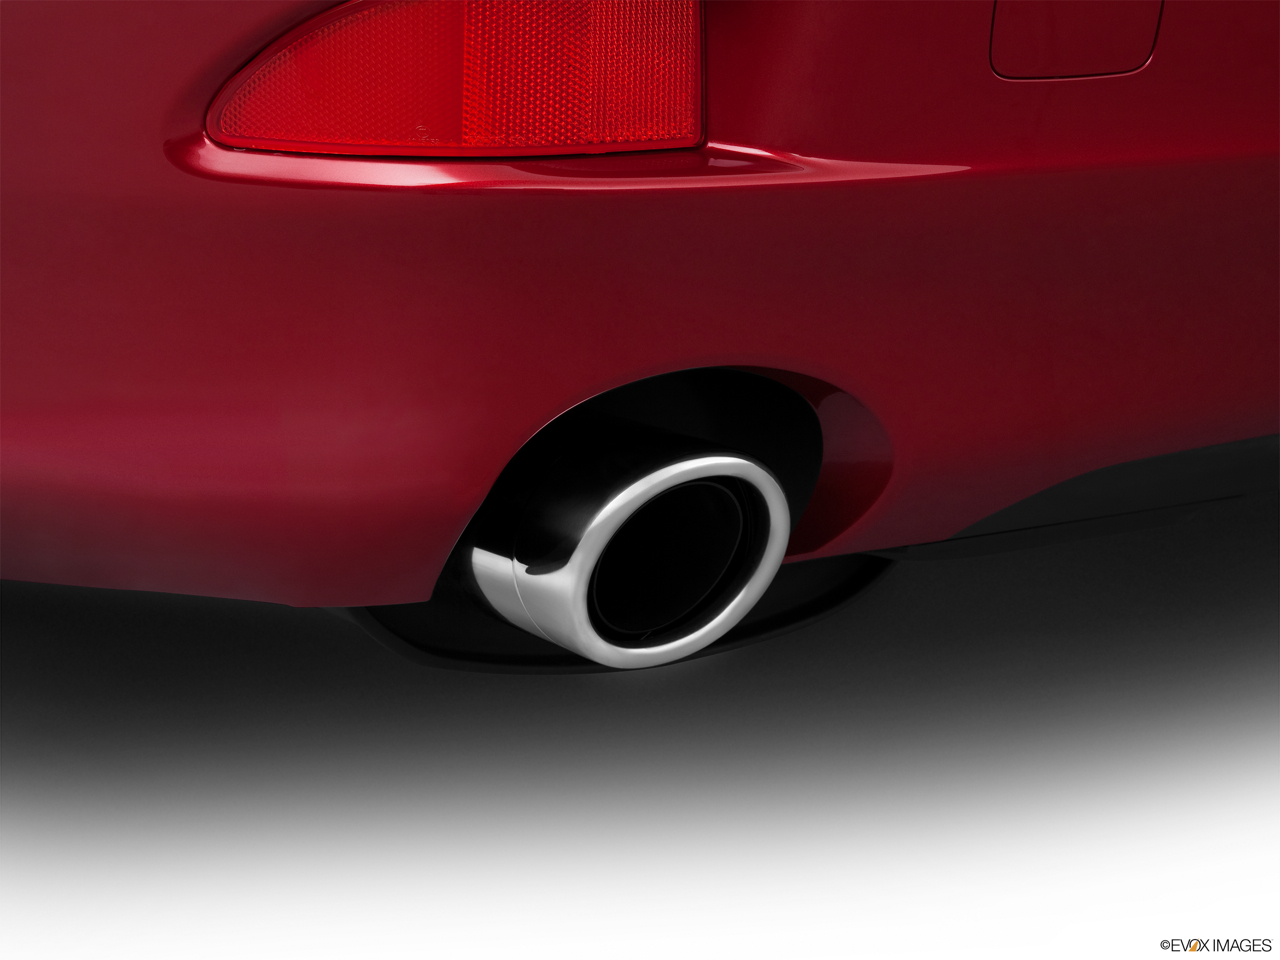 2011 Lexus IS 250 IS250 Chrome tip exhaust pipe.